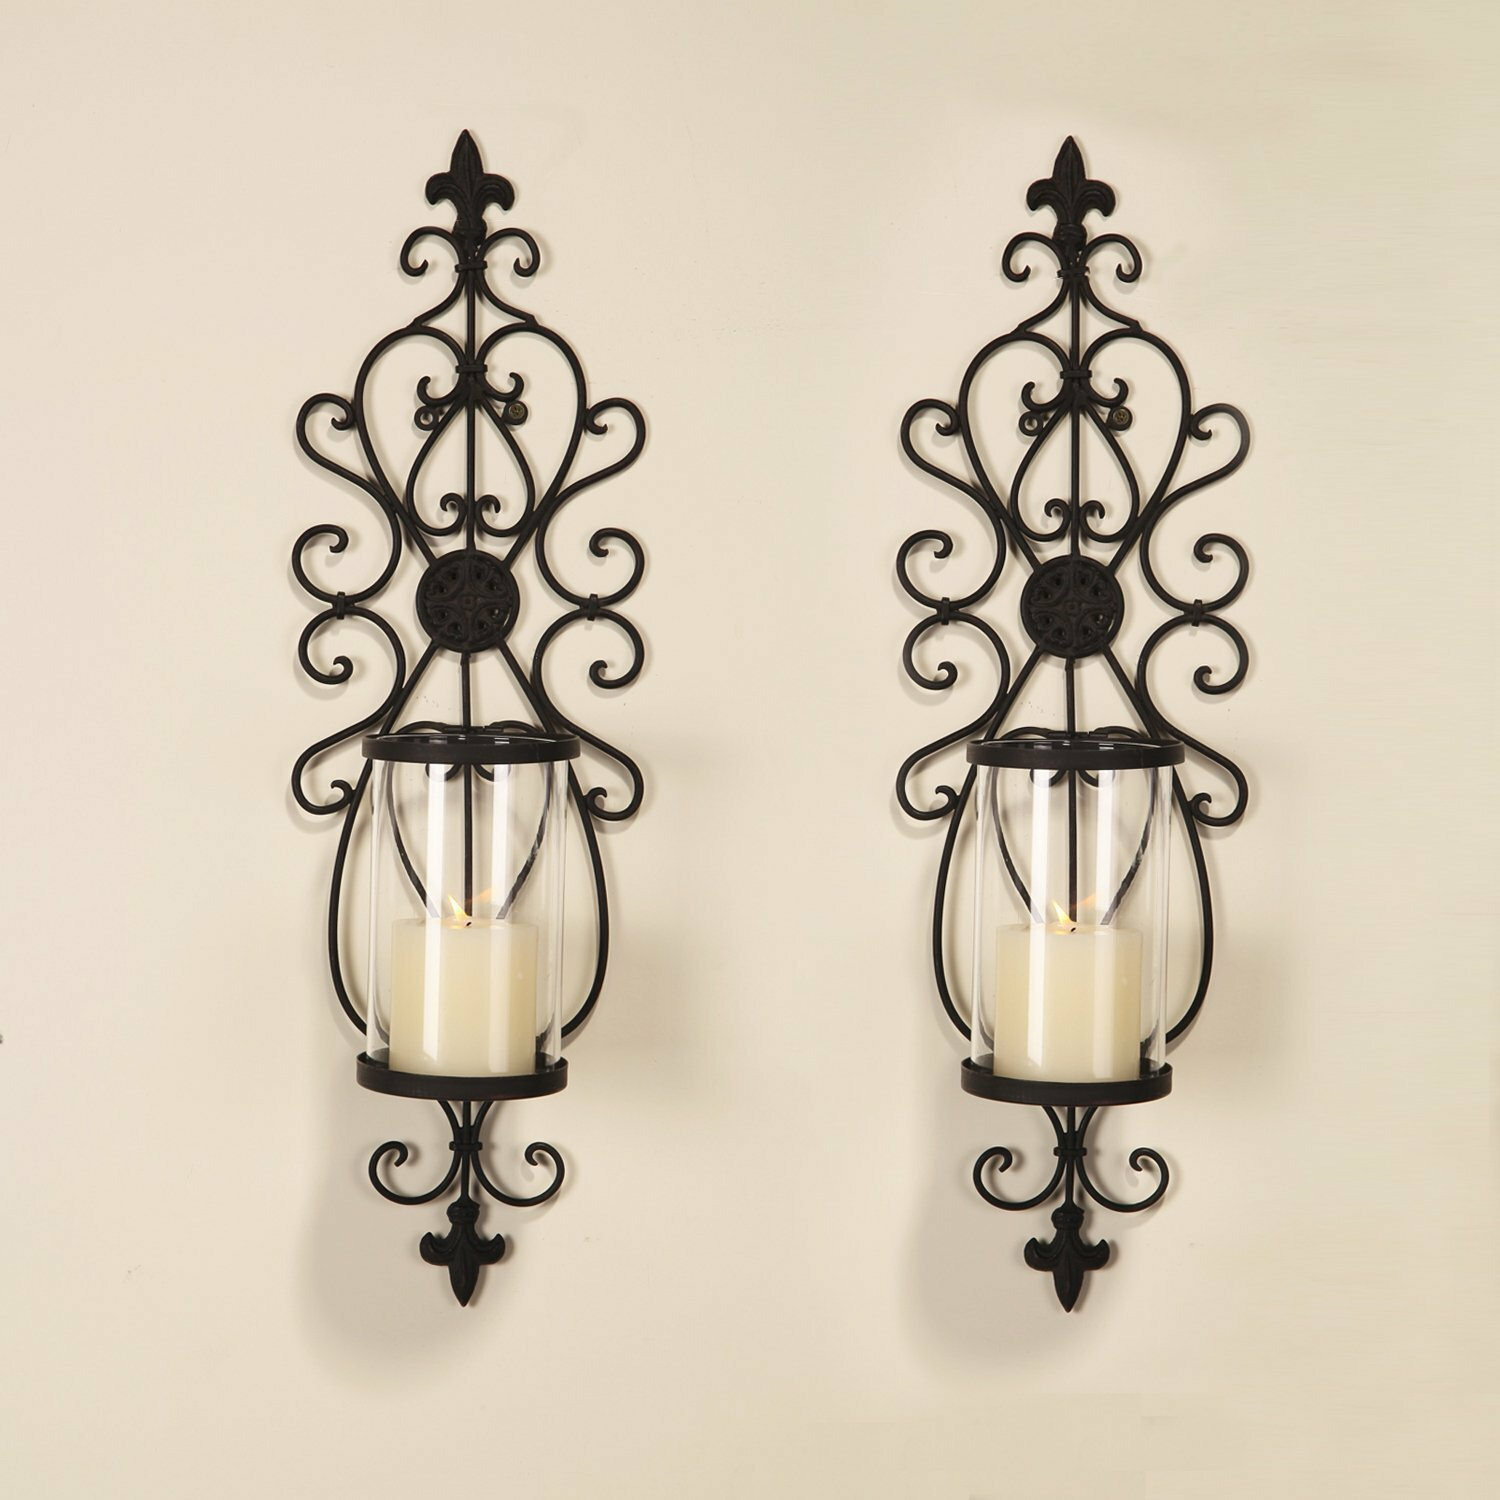 Iron Candle Holder Wall Sconce : Adeco Trading Iron Wall Sconce Candle Holder Set of 2